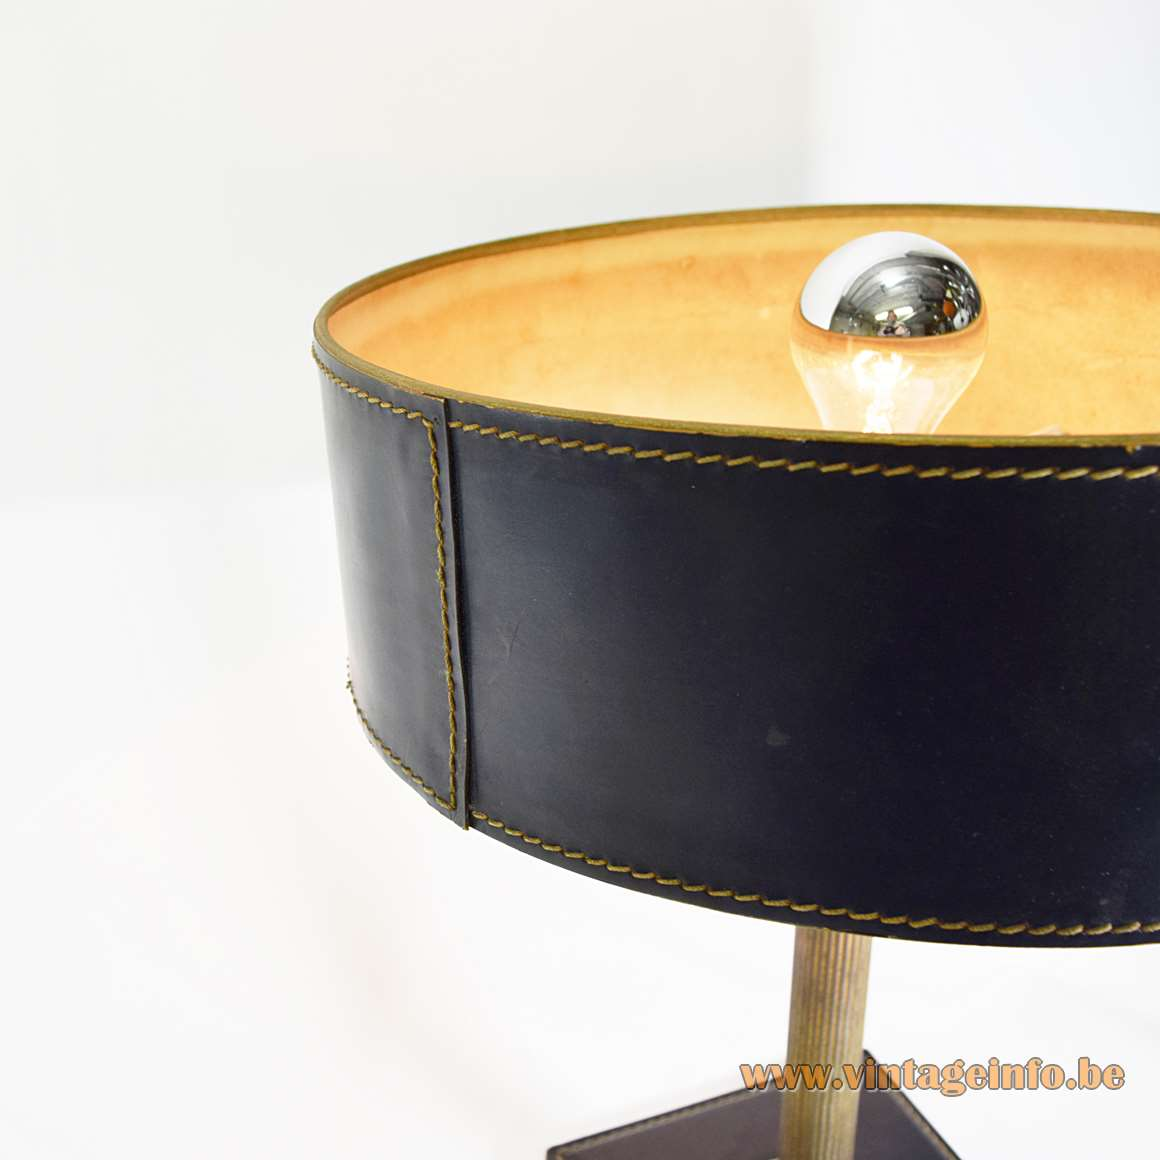 Black Leather Square Base Desk Lamp clad Jacques Adnet Hermès Delvaux ILG 1970s brass rod MCM